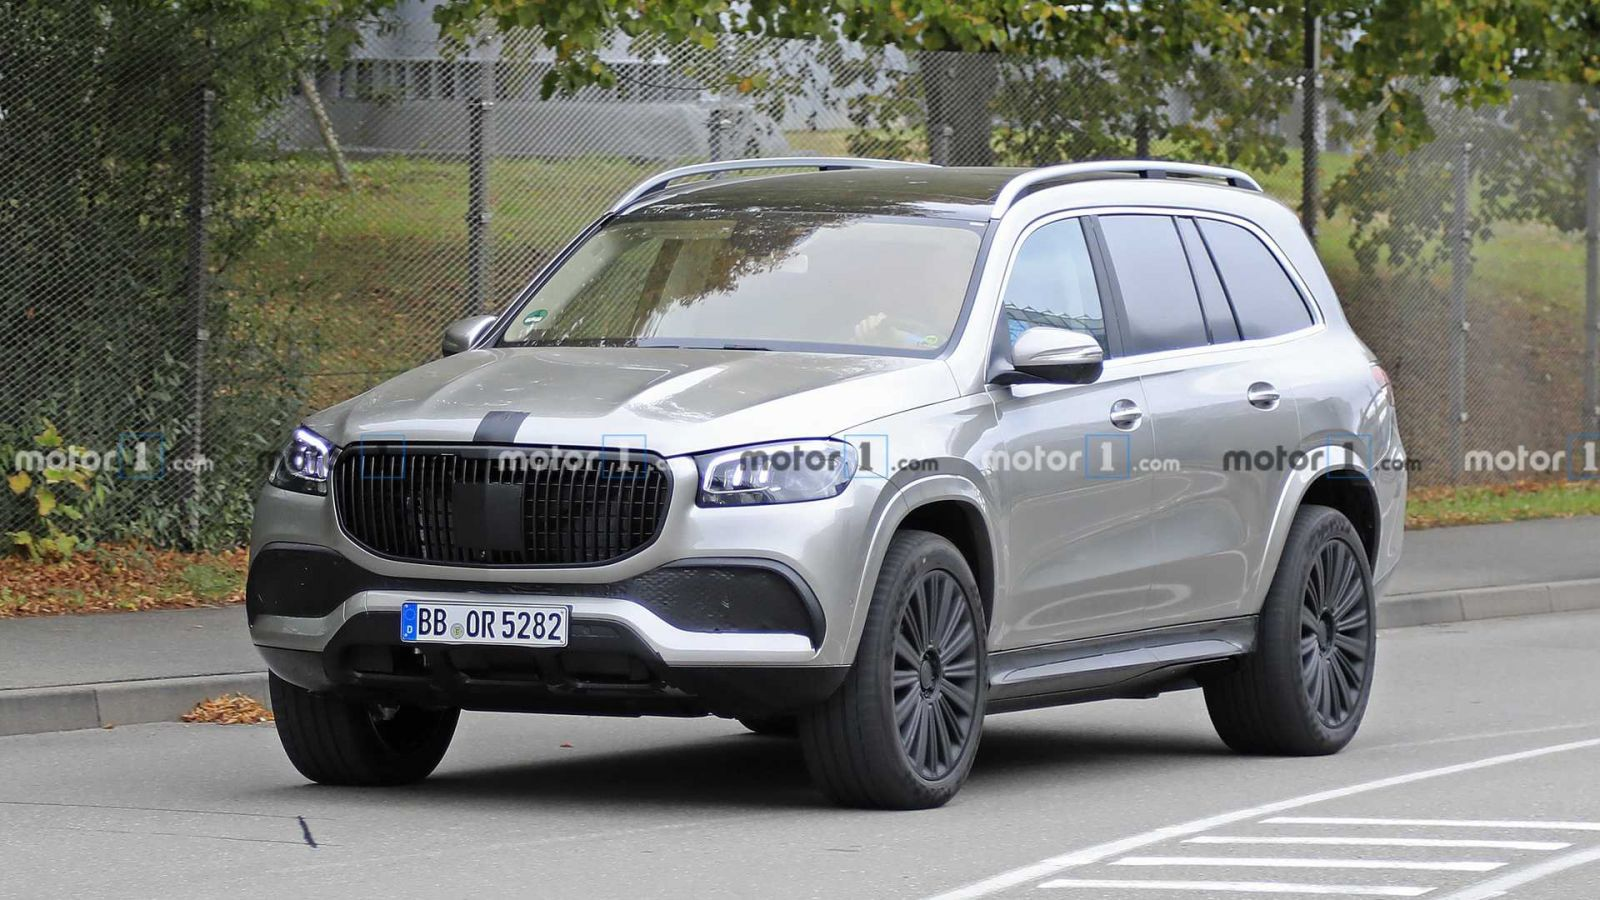 Mercedes Maybach Gls Spied Without Any Camo News Karabakh Motors